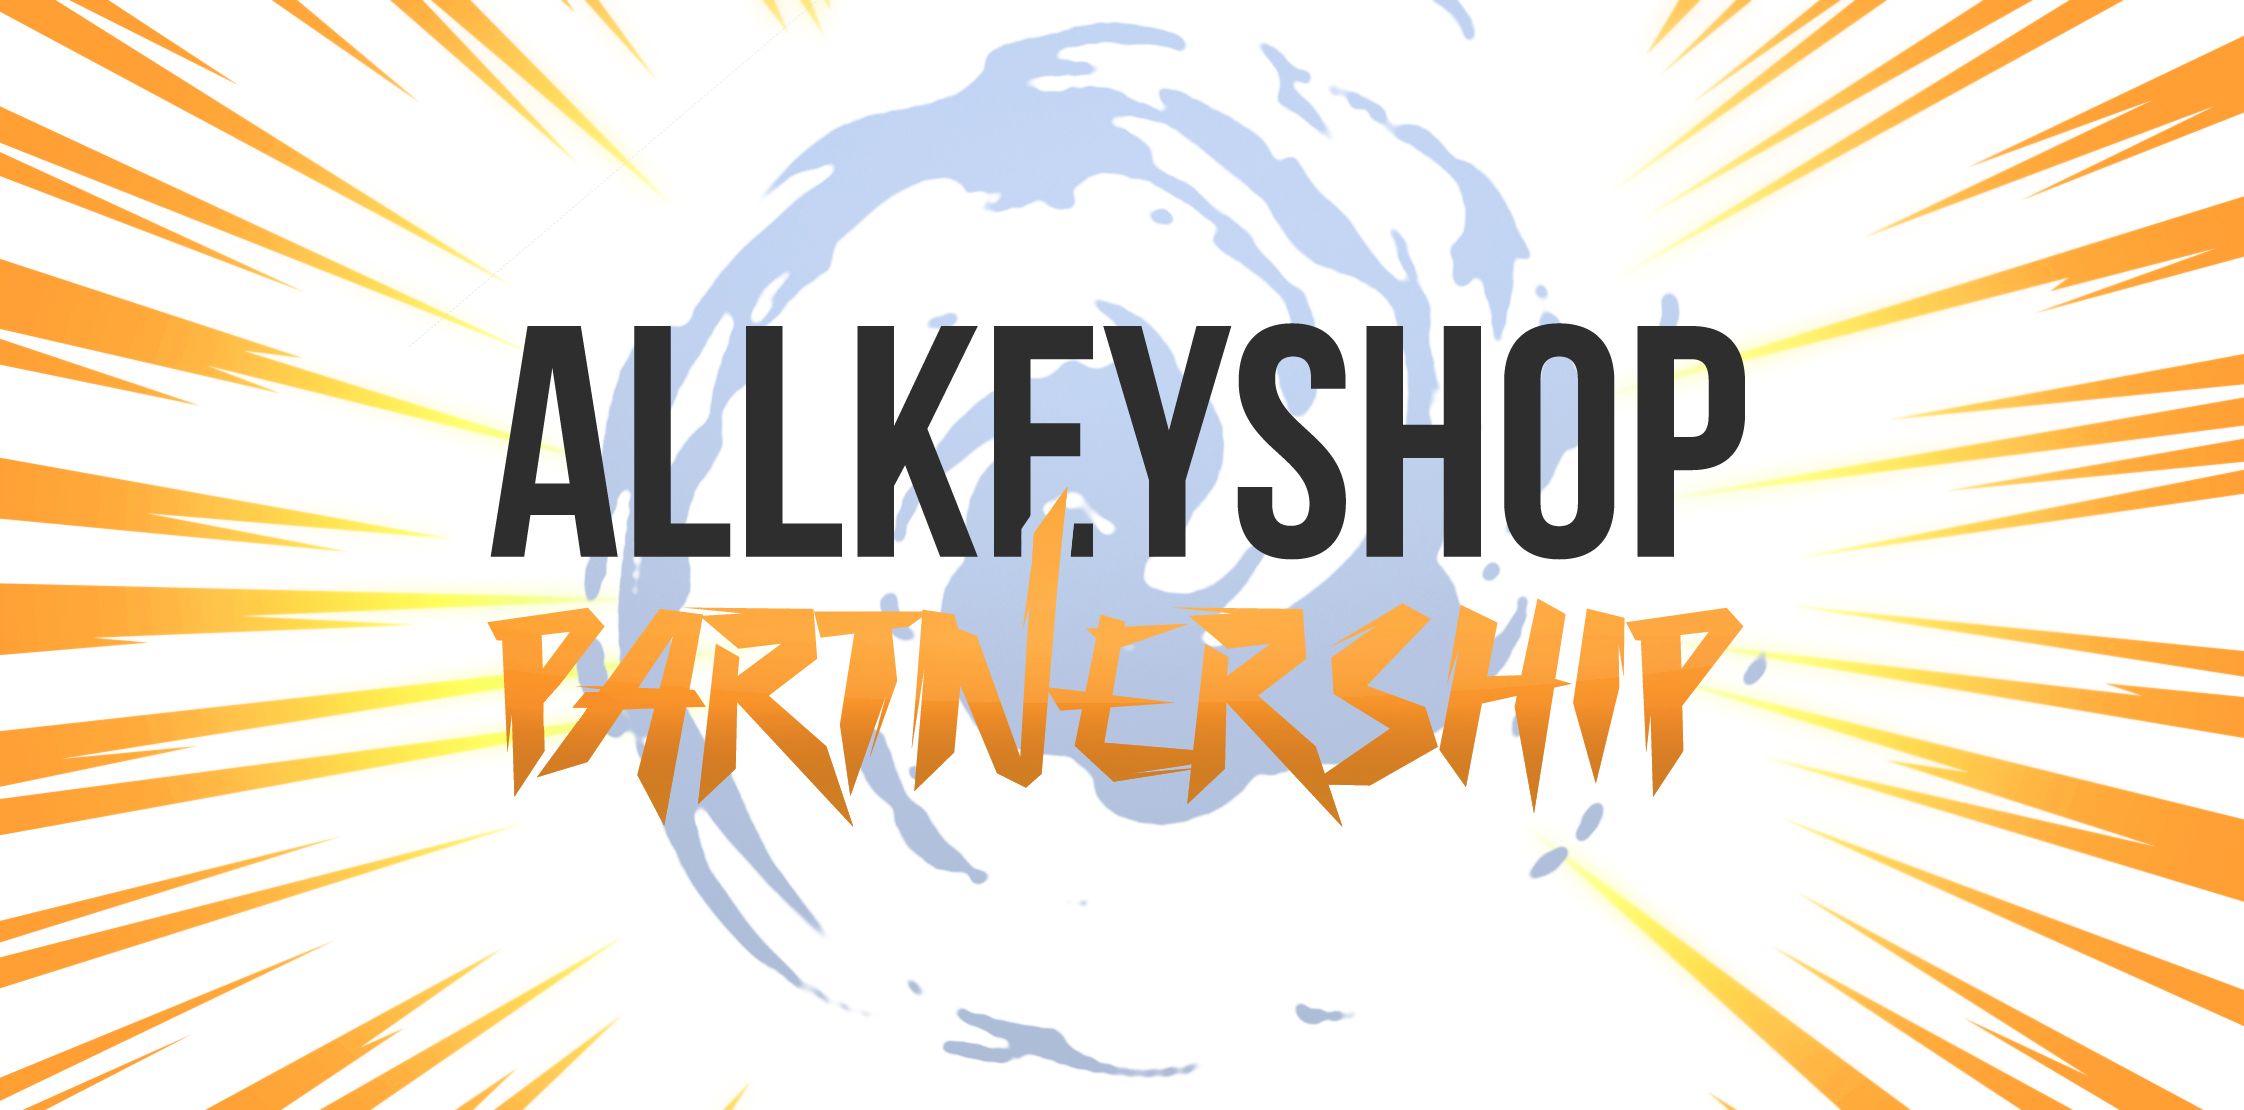 Allkeyshop Website Partnership